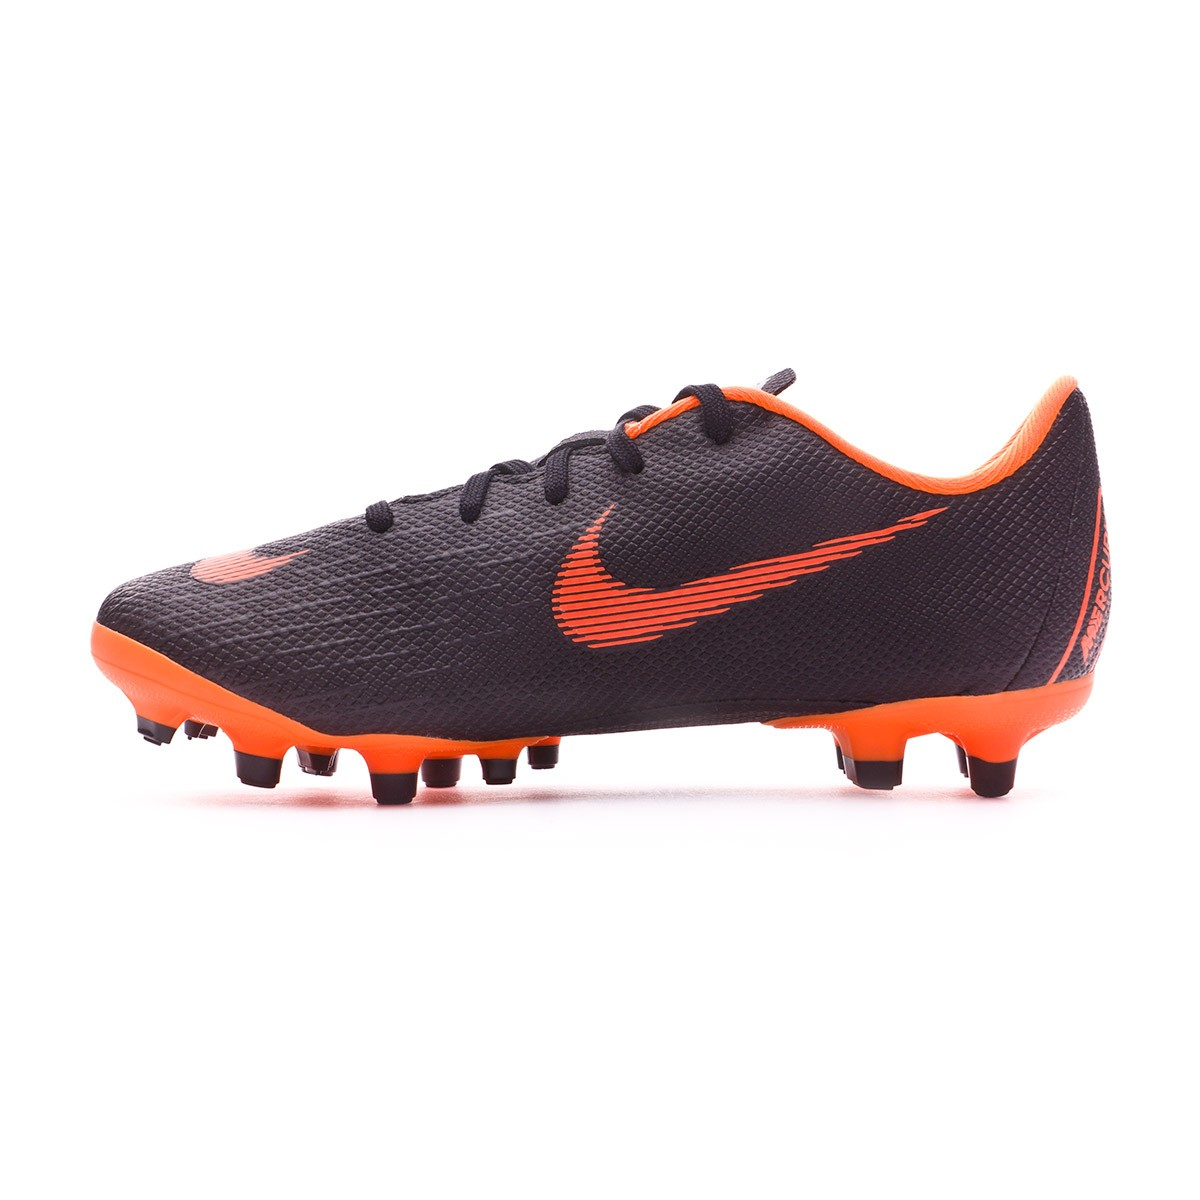 e9645d7505a Football Boots Nike Kids Mercurial Vapor XII Academy PS MG Black-Total  orange-White - Football store Fútbol Emotion